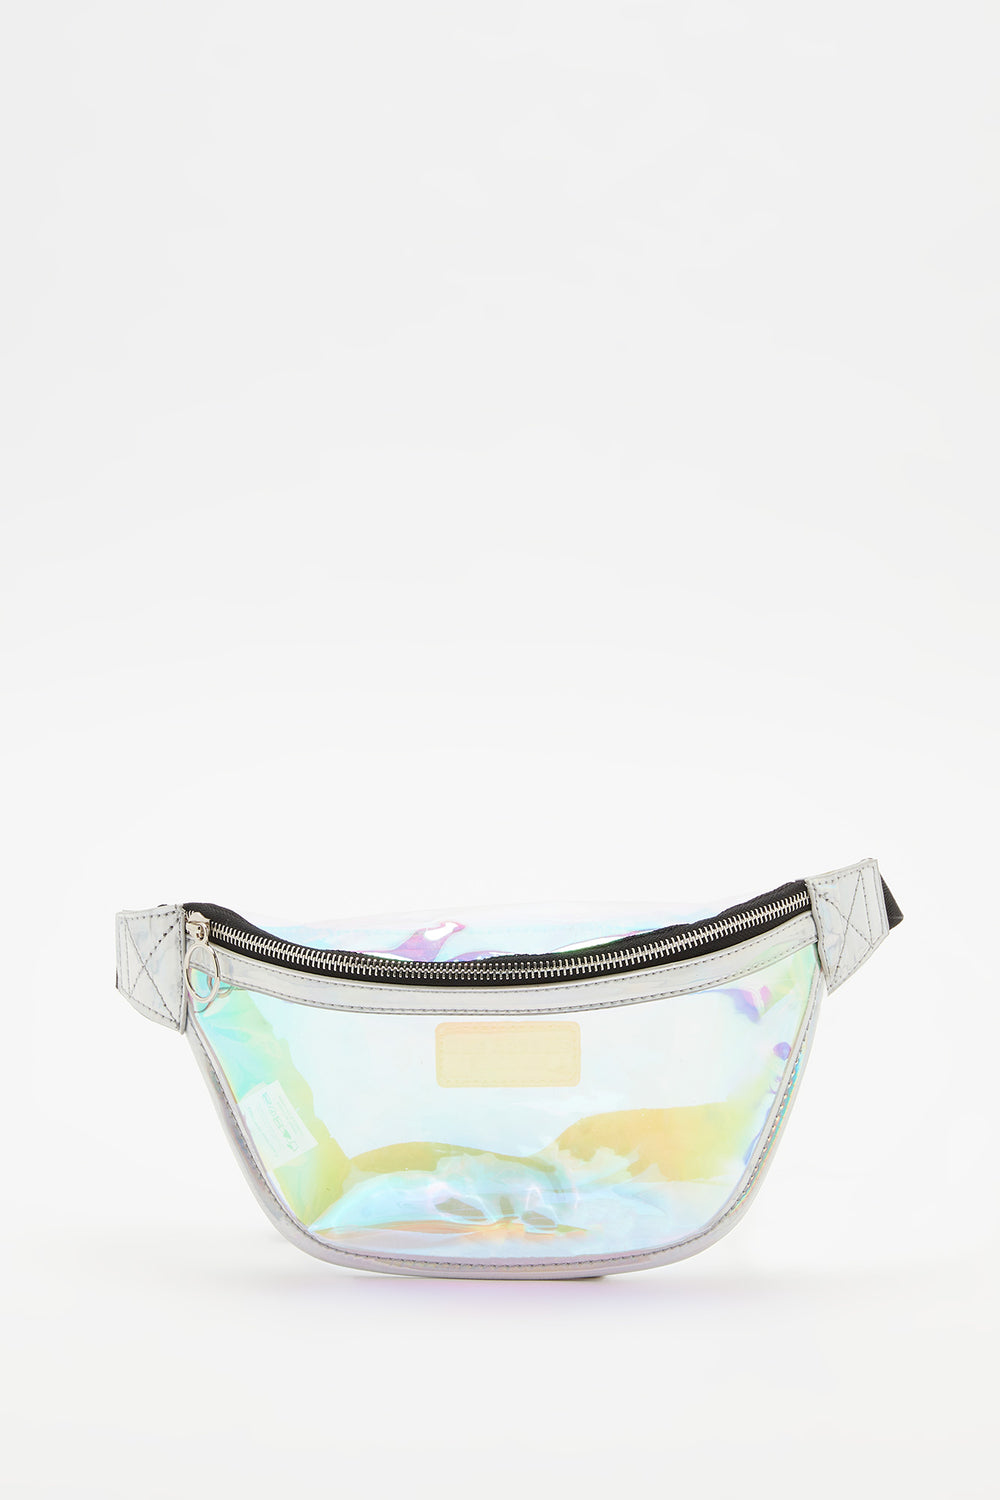 Sac Banane Transparent Gris